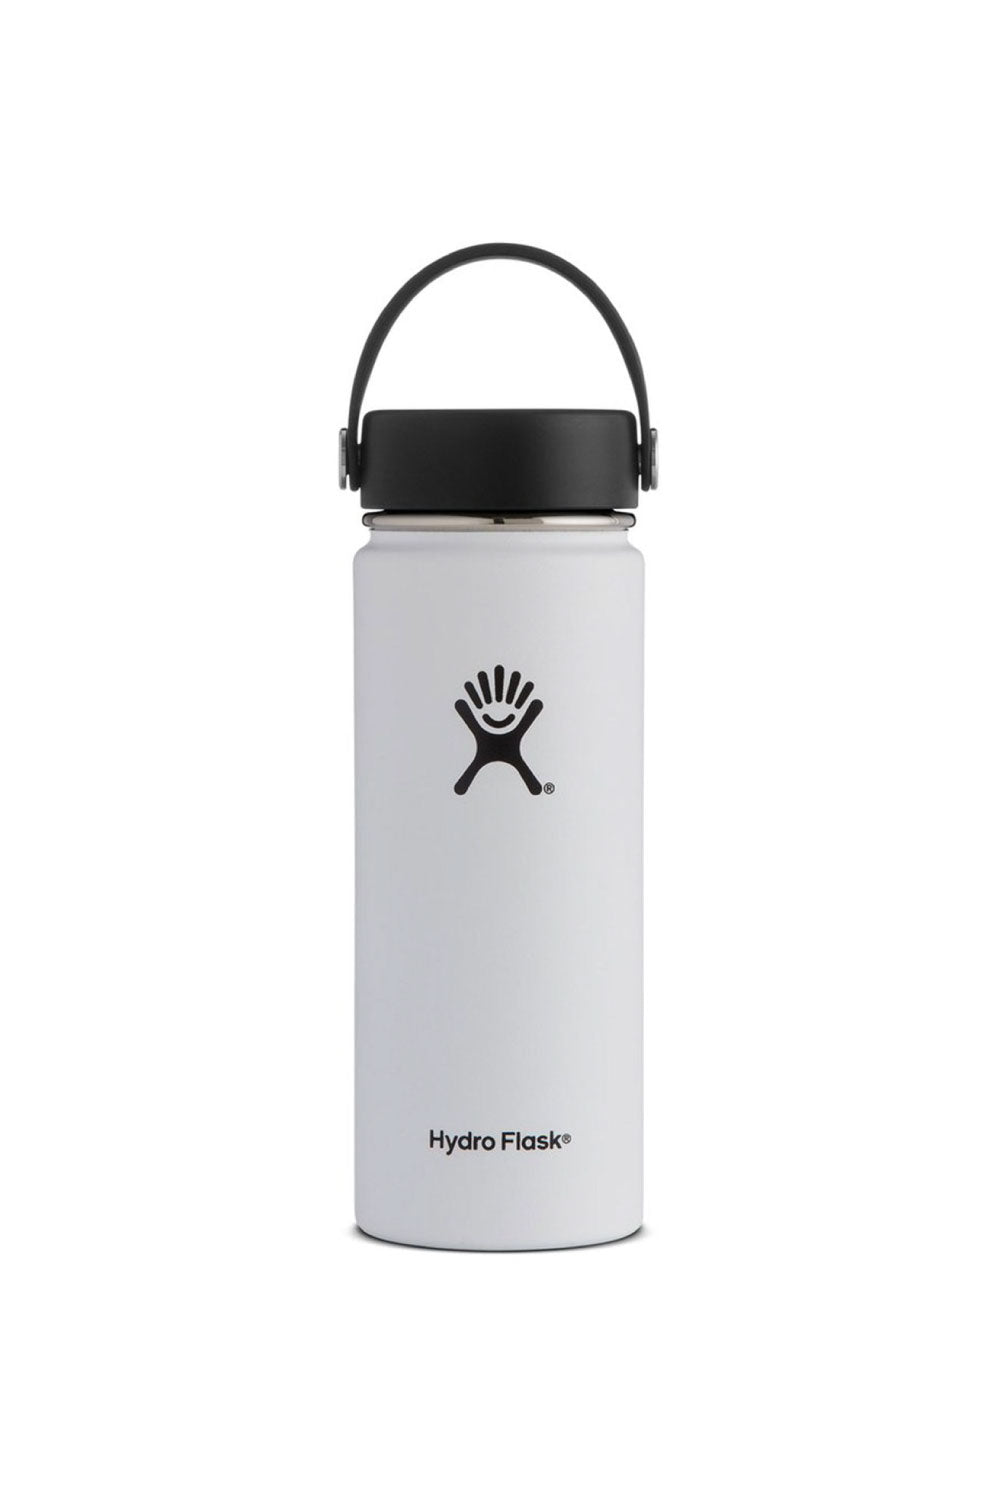 Hydro flask 18oz (533 ml) Wide Mouth Drink Bottle